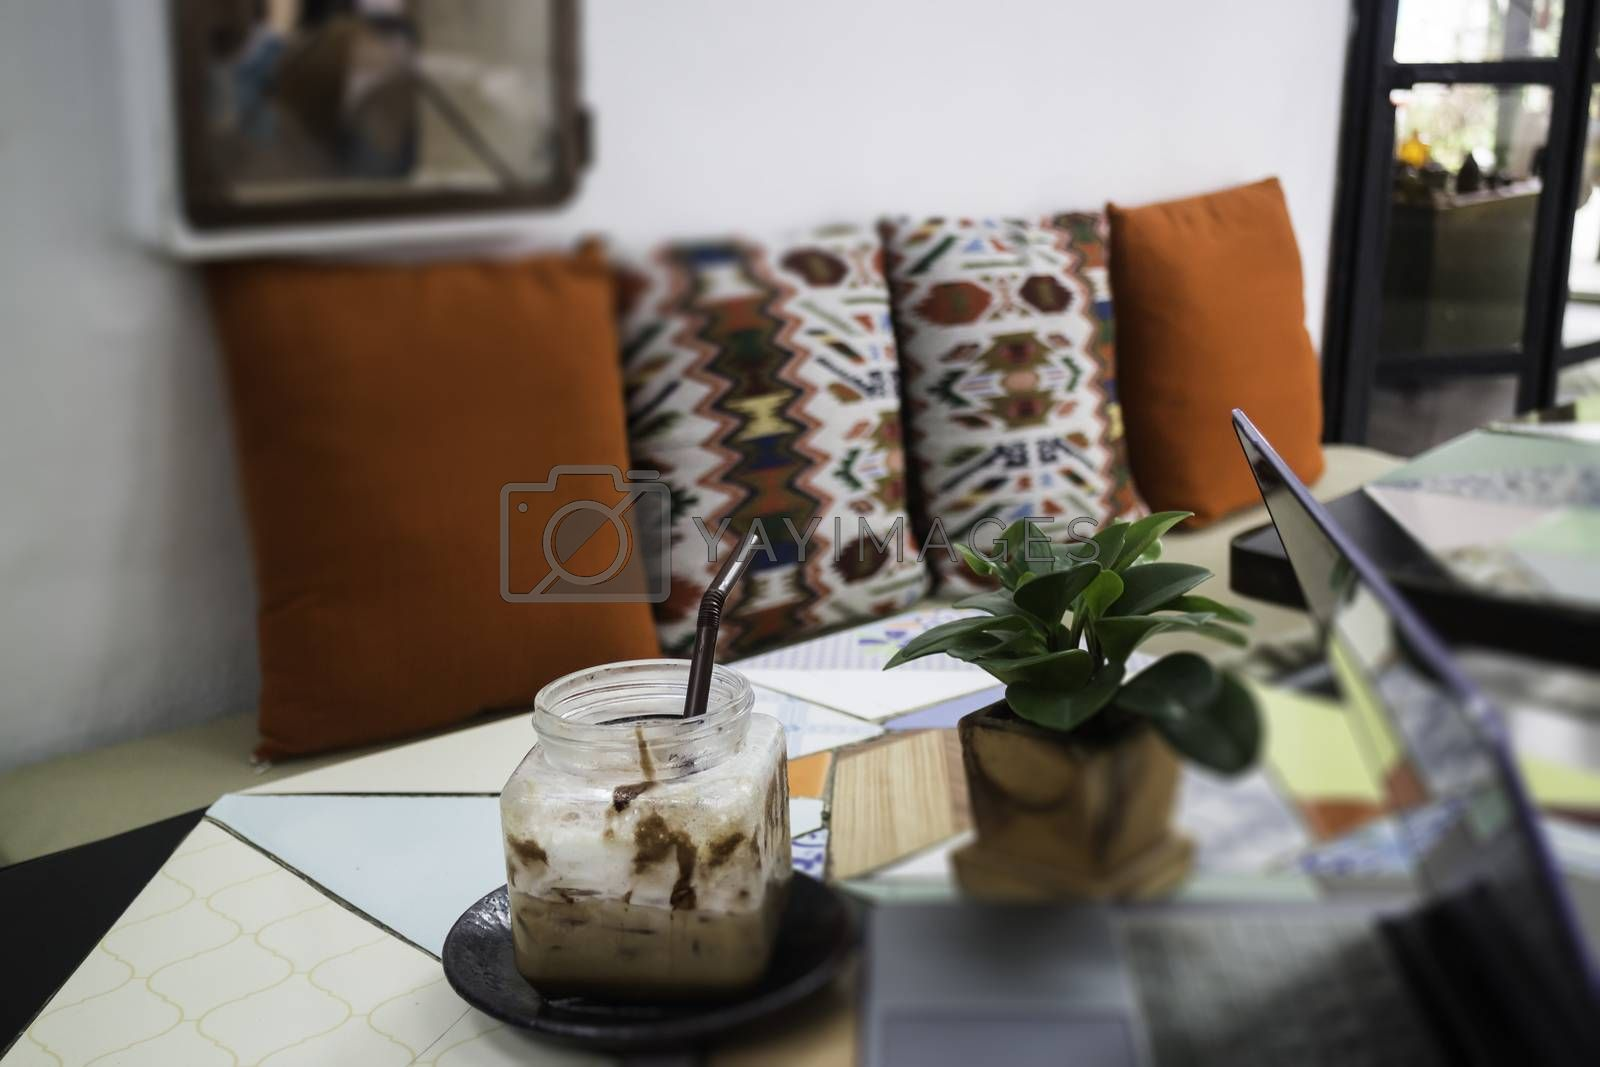 Indy interior design in street cafe, stock photo